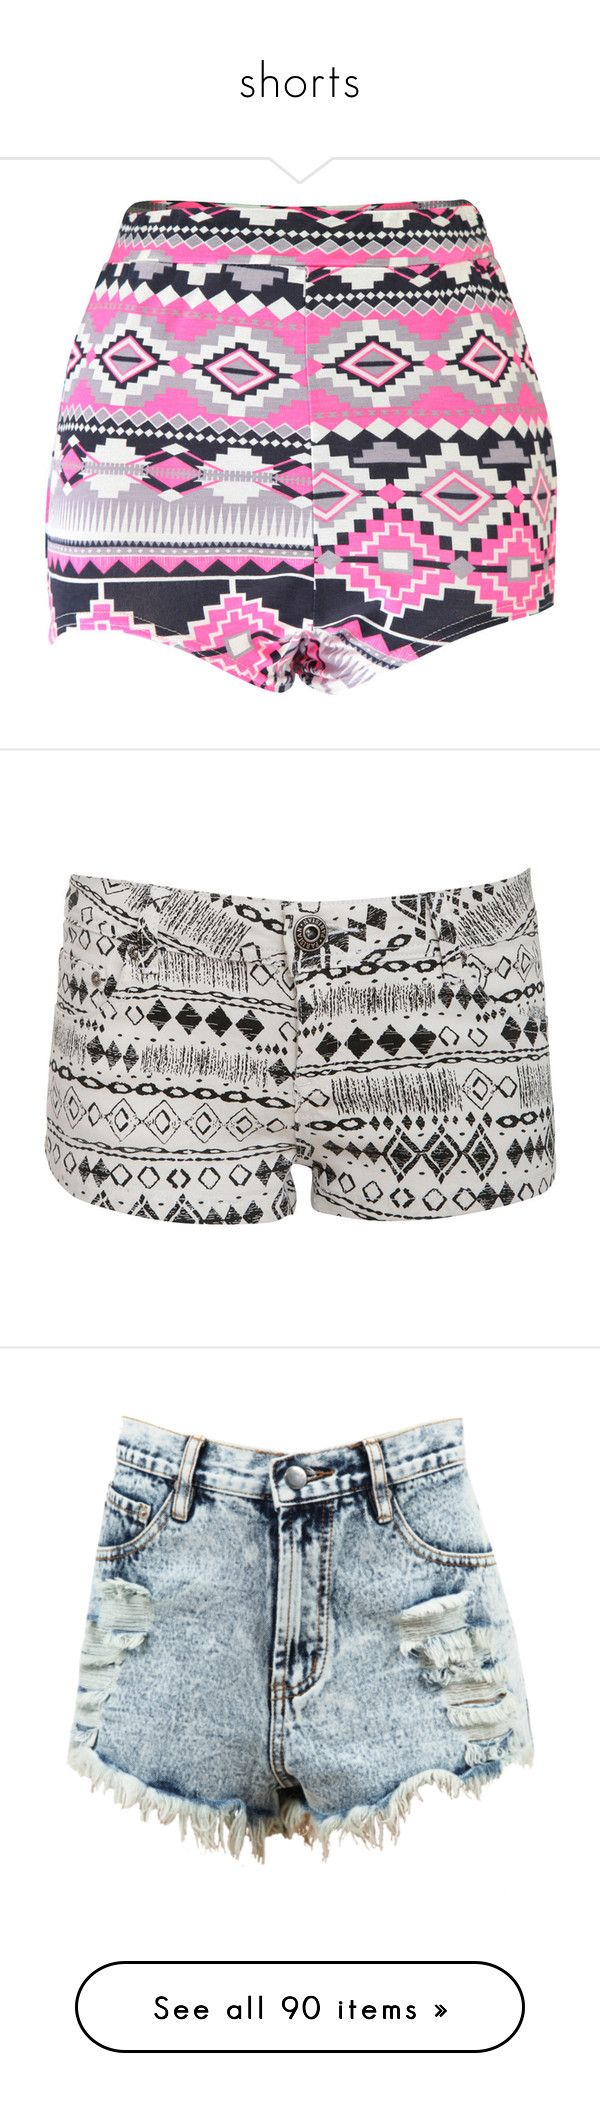 """shorts"" by ilovefashion-1234 ❤ liked on Polyvore featuring shorts, bottoms, pants, neon shorts, aztec print shorts, rayon shorts, aztec shorts, flat-front shorts, short and white mini shorts"